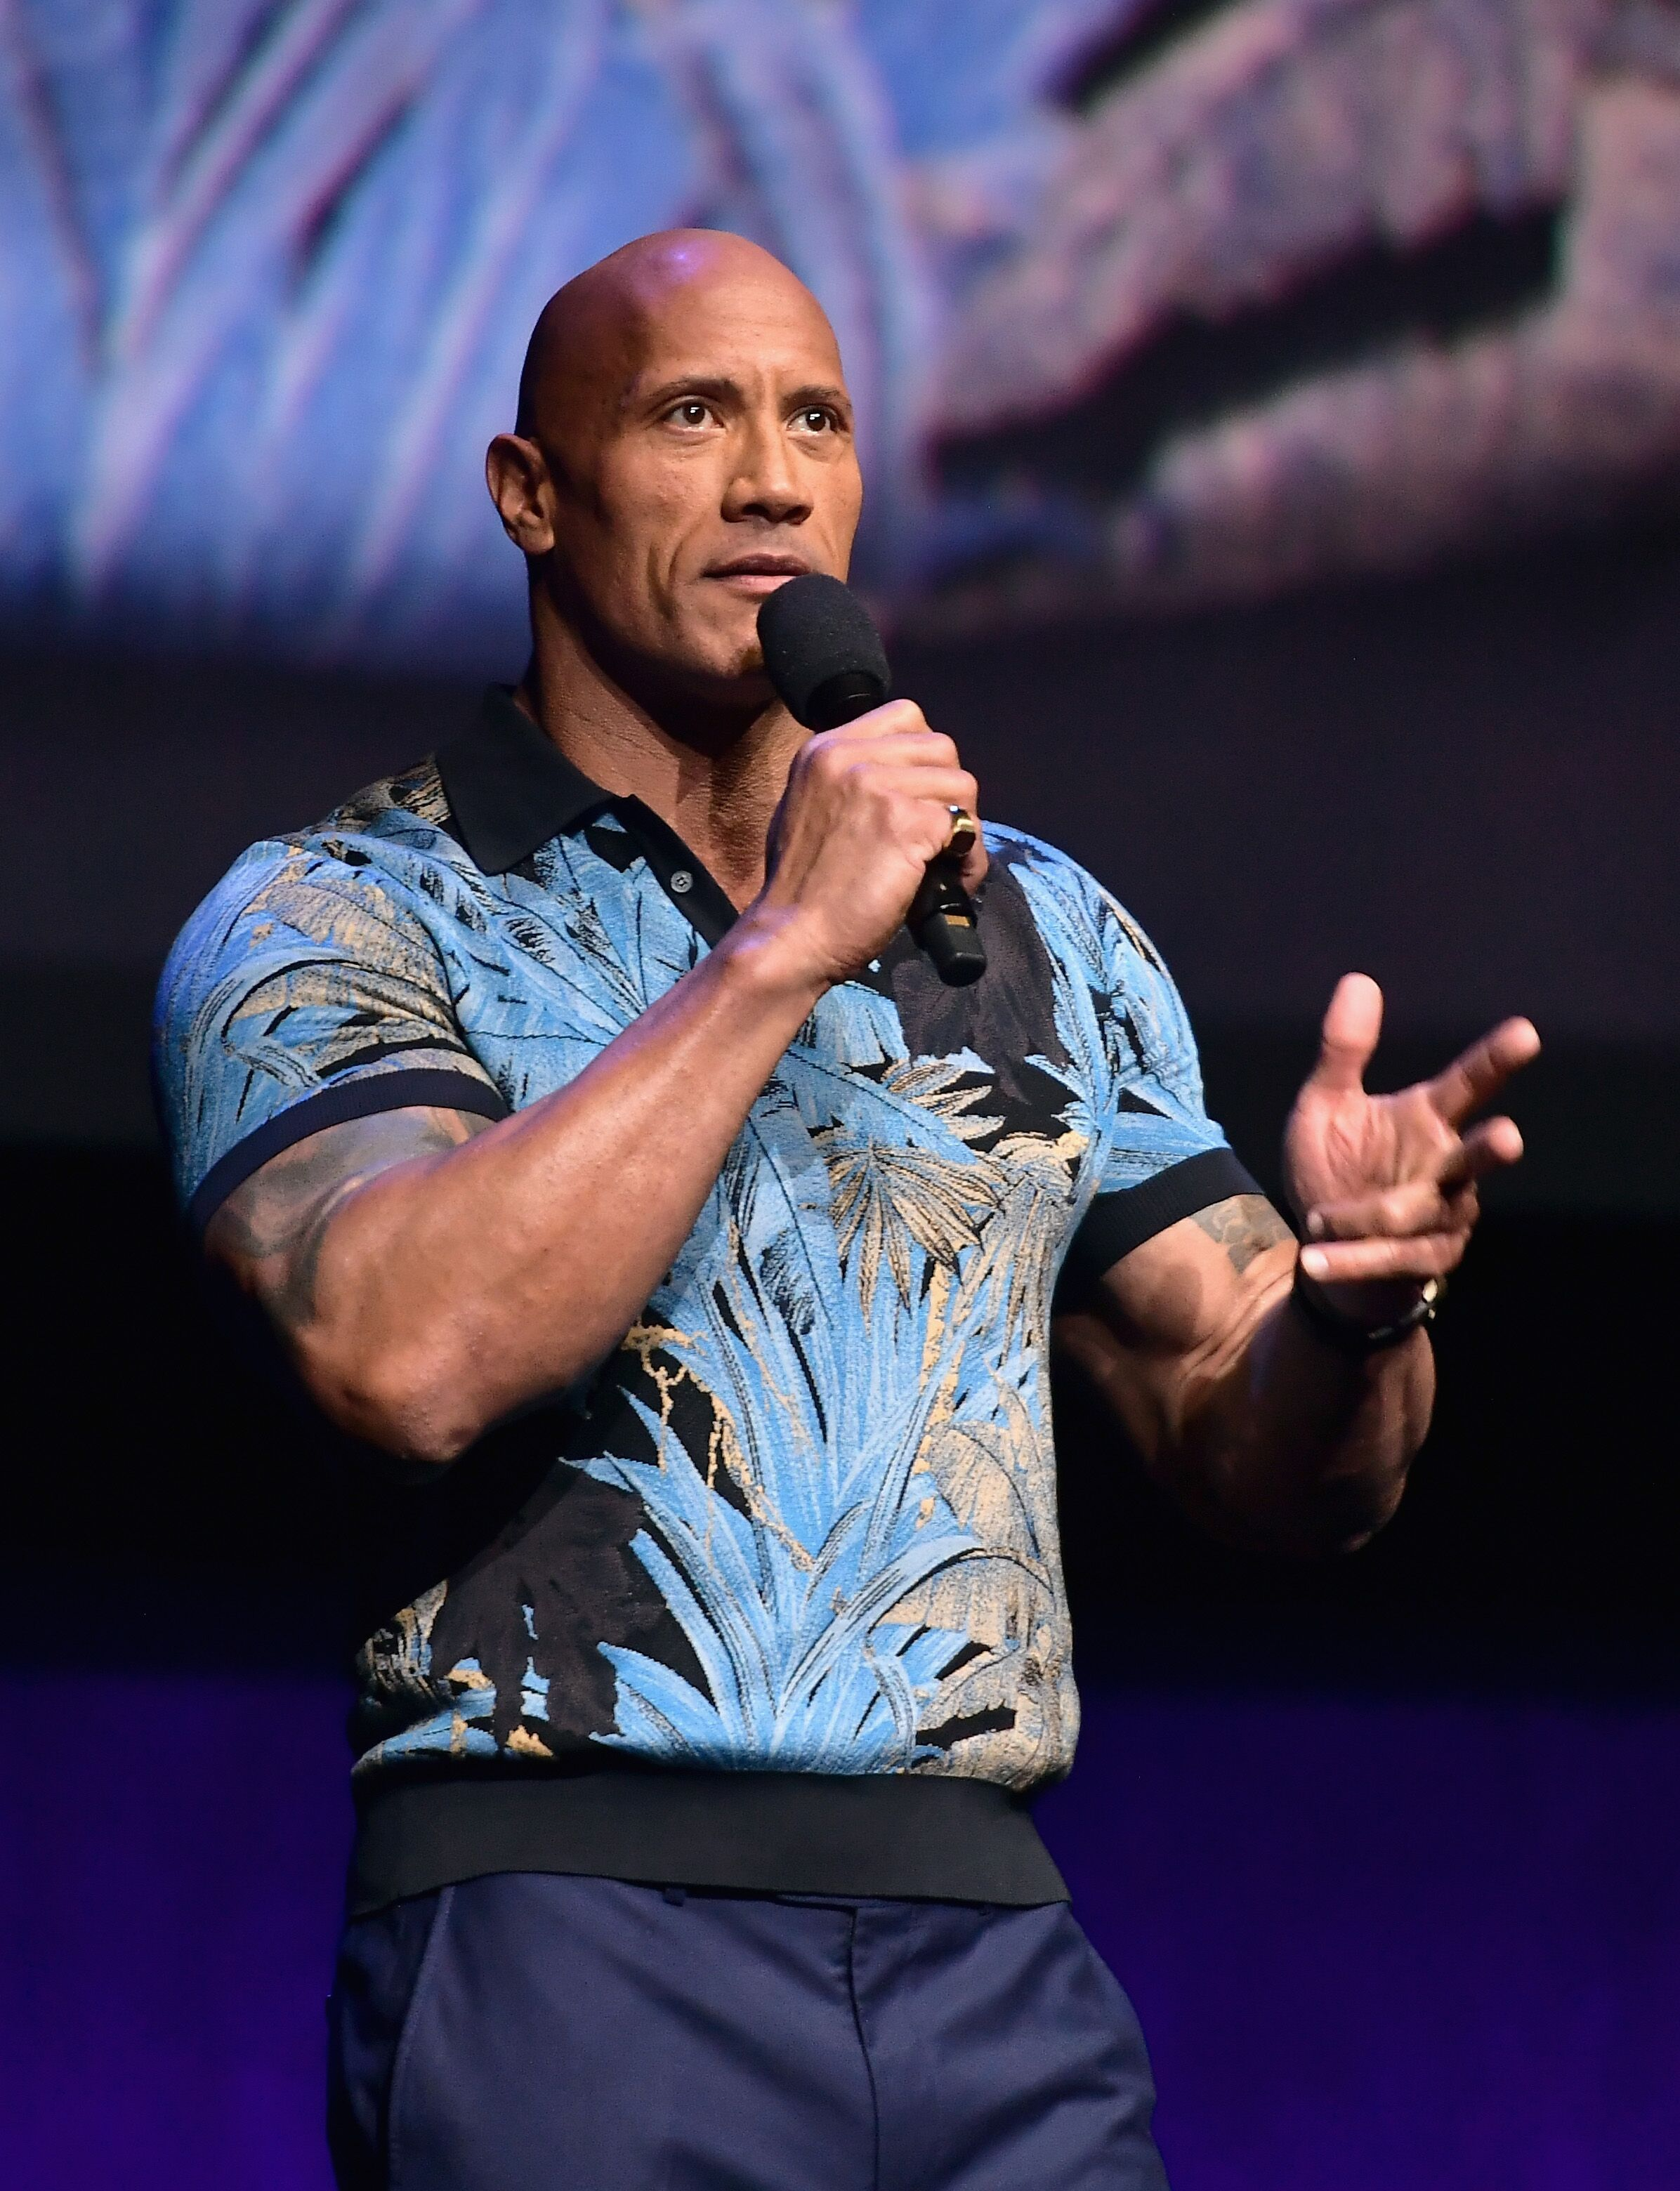 Dwayne Johnson speaks onstage at CinemaCon 2019 Universal Pictures Invites You to a Special Presentation Featuring Footage | Getty Images